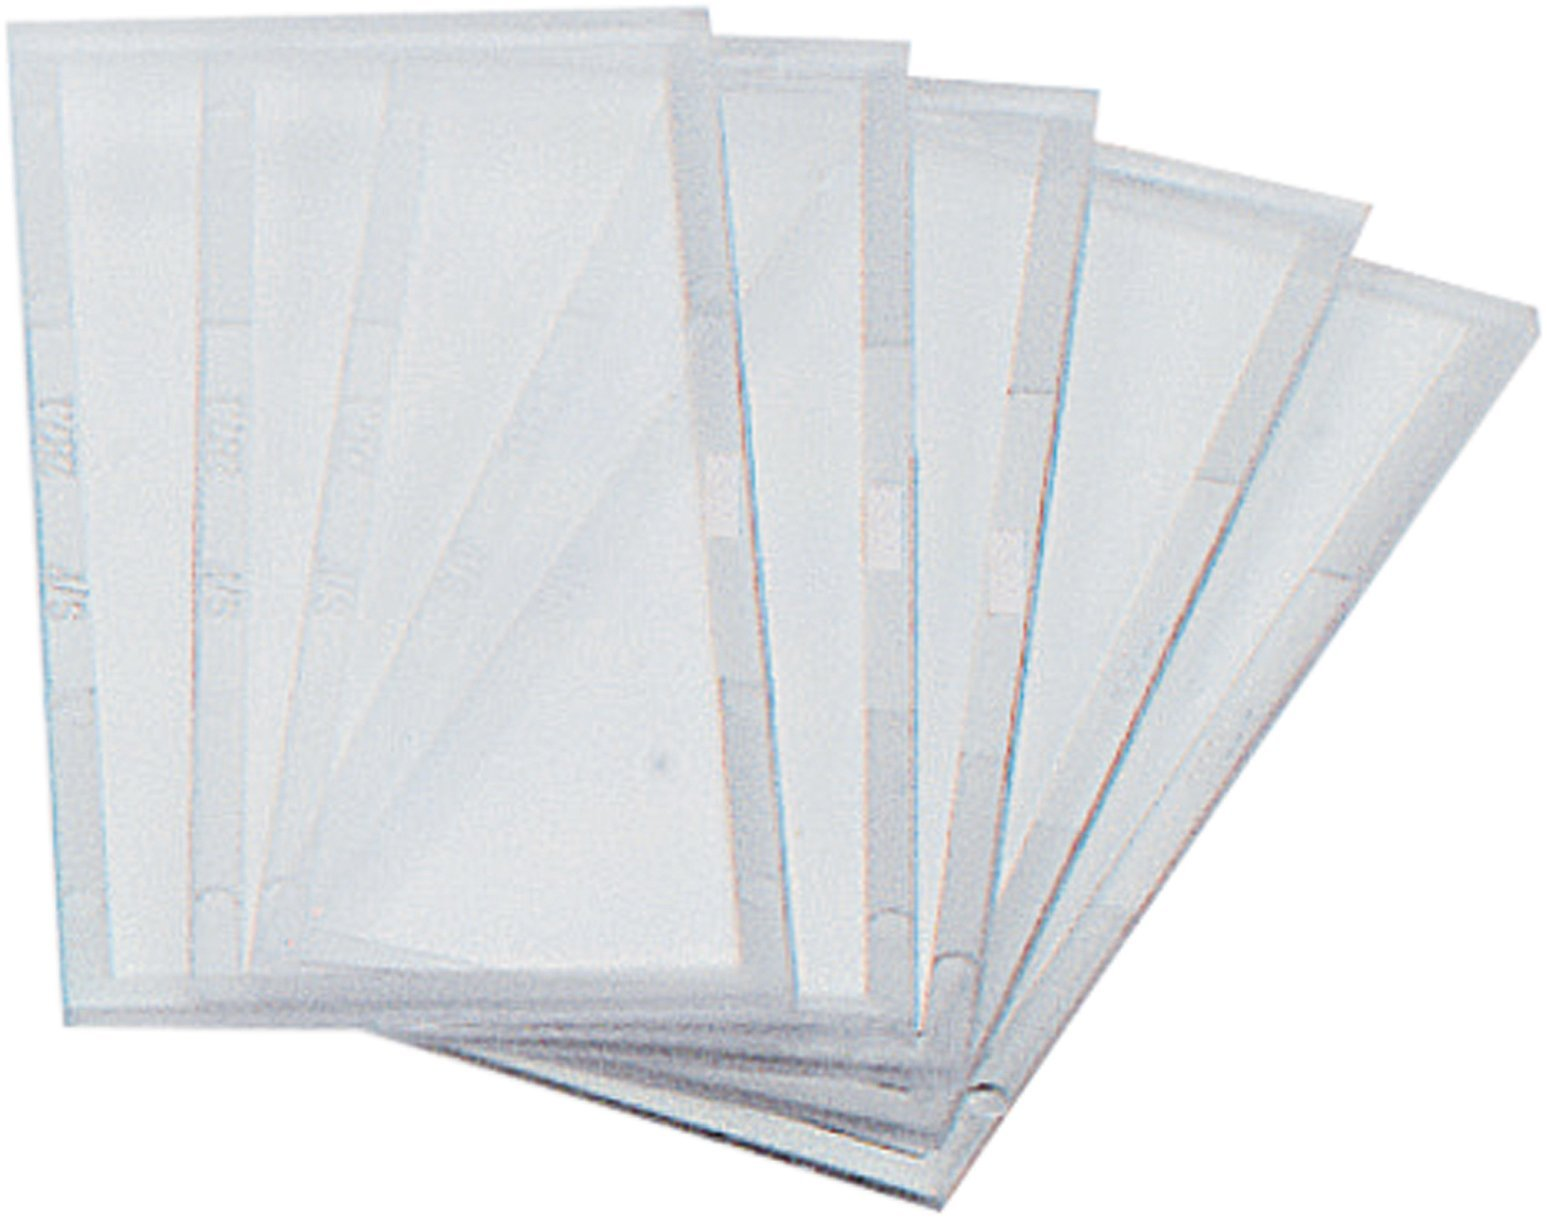 Firepower 1441-0048 Clear Polycarbonate Cover/Safety Plate, 2-Inch x 4.25-Inch